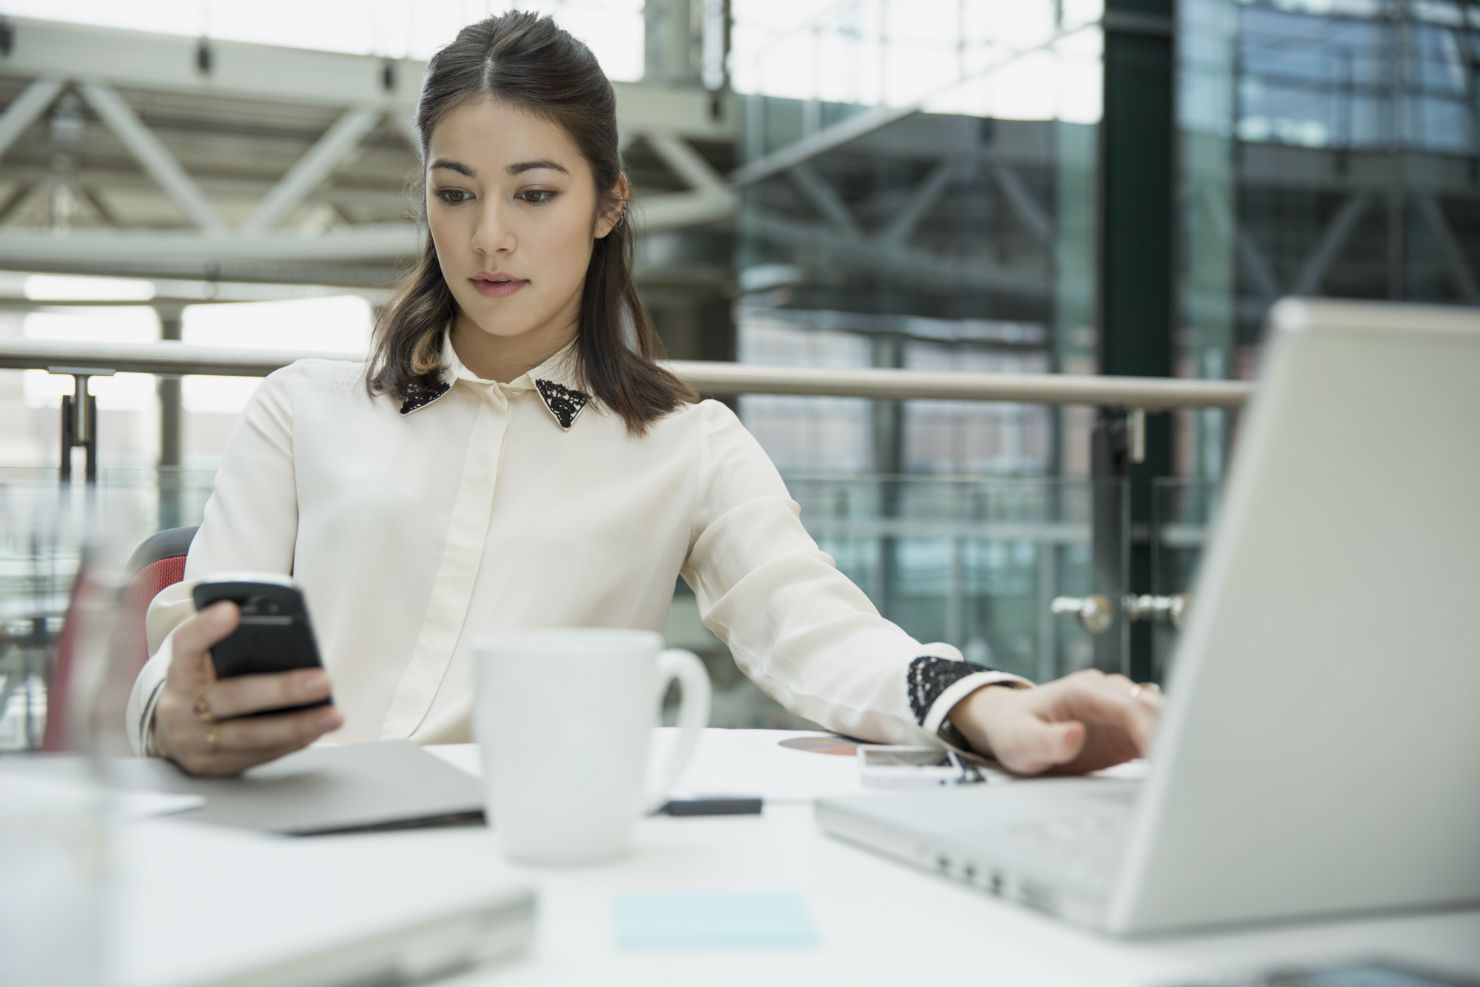 Business professional looking at smartphone